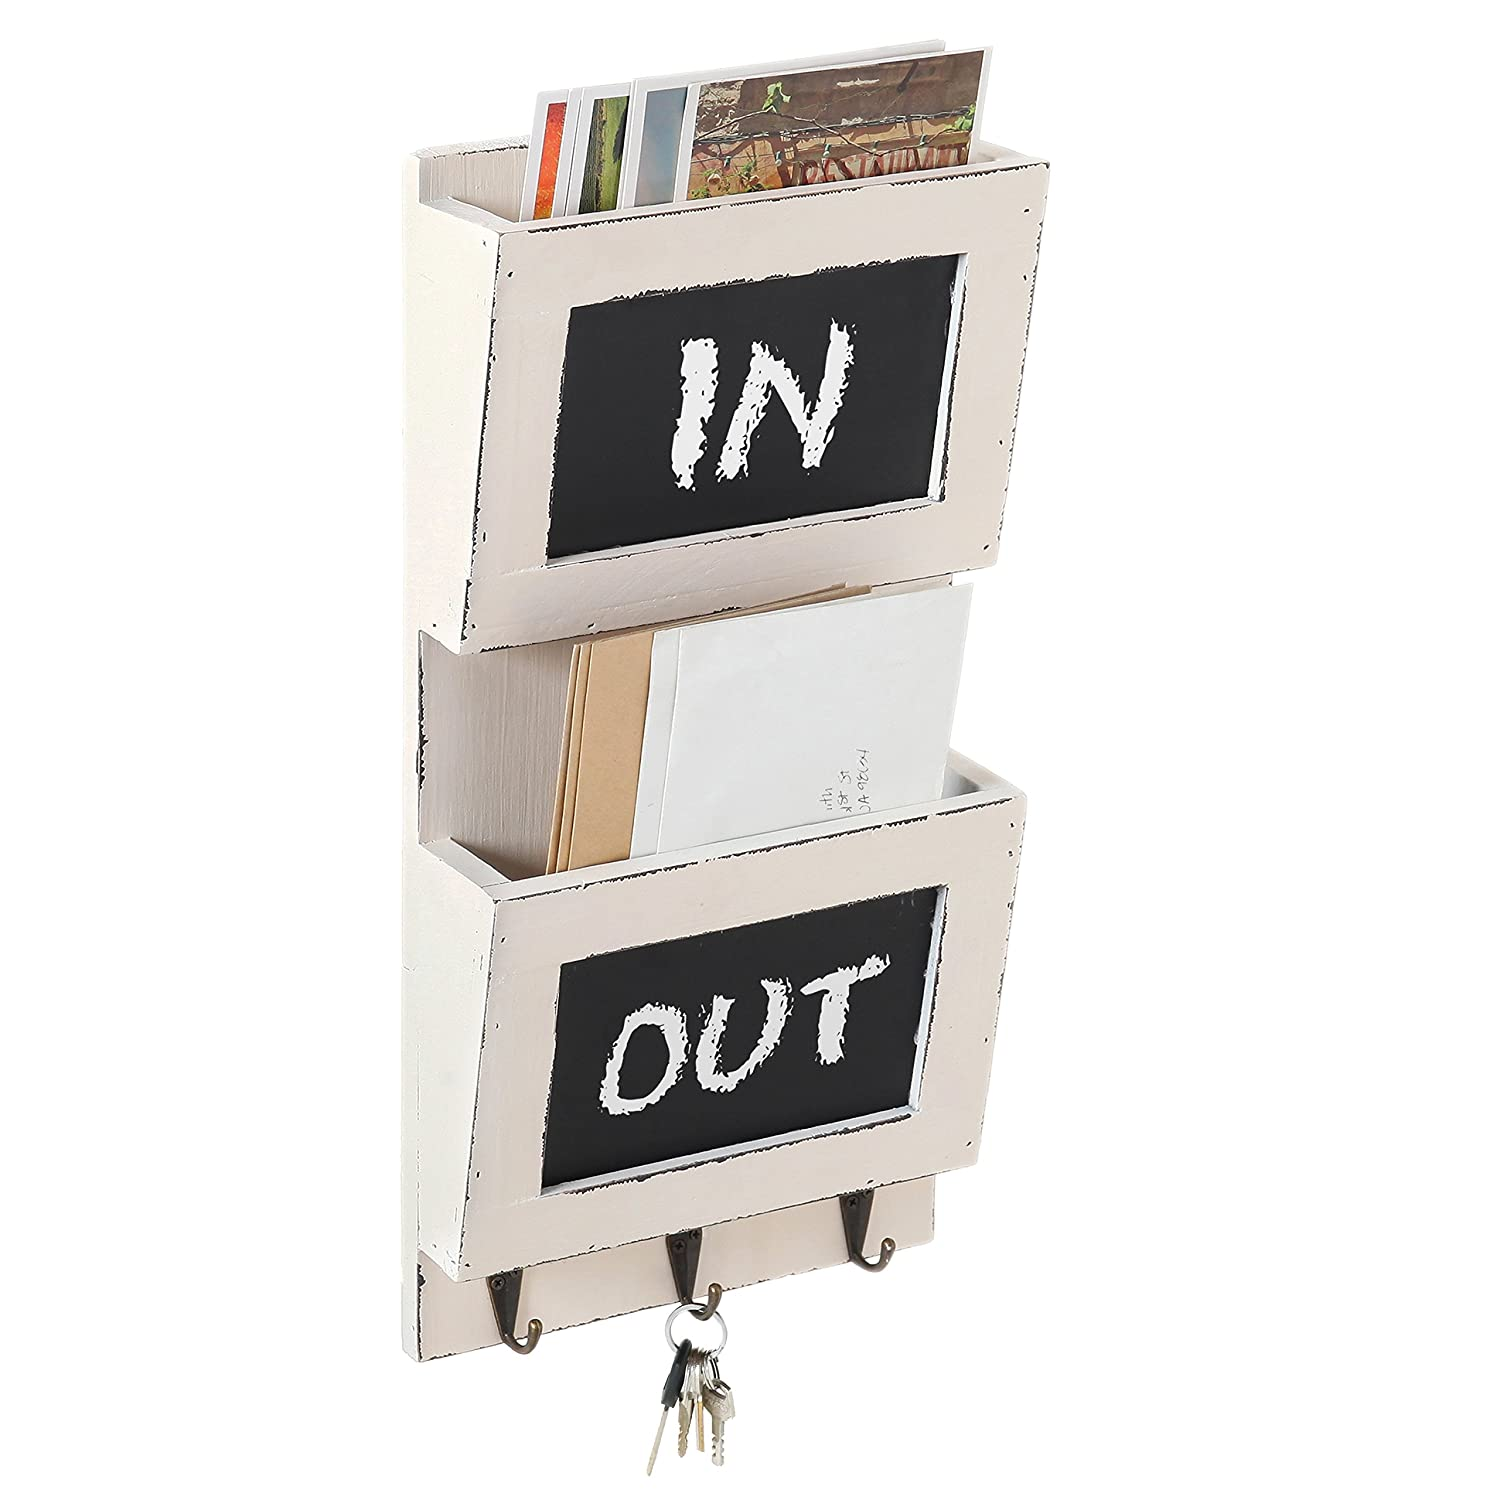 MyGift Vintage White Wall-Mounted 2-Tier Mail Sorter with Chalkboard and 3 Key Hooks